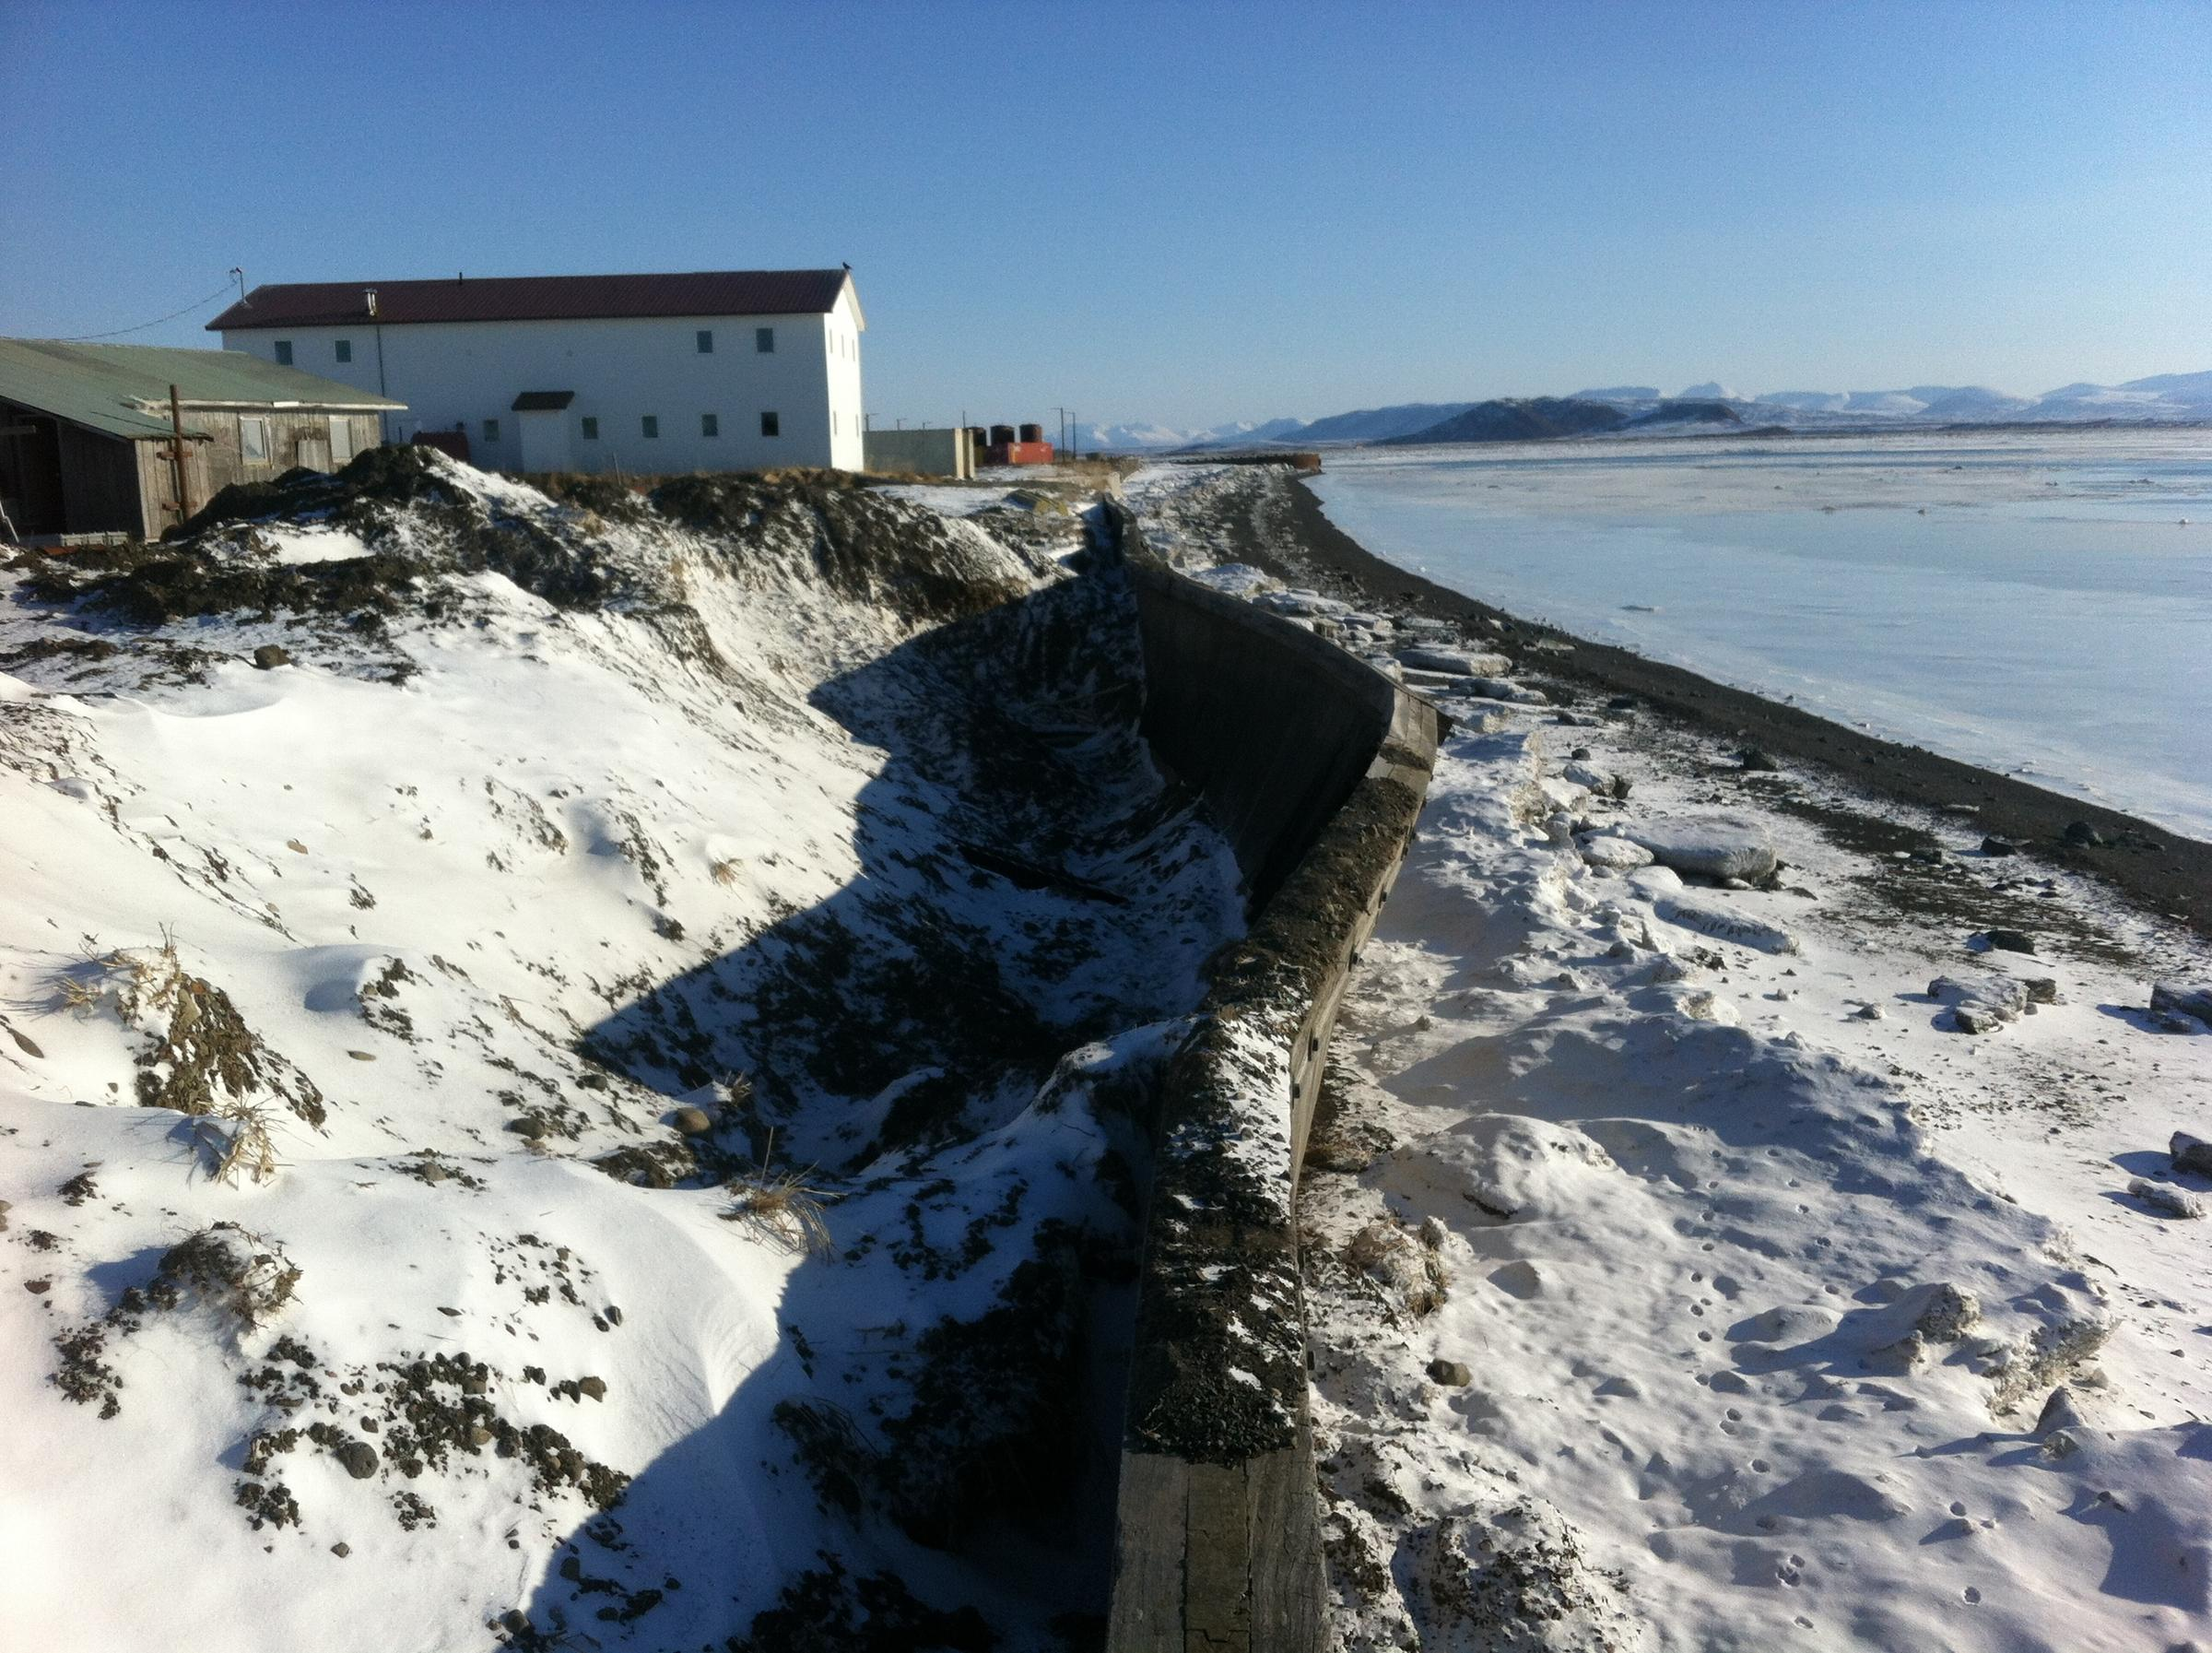 Coastline in Togiak, March 2015. (Photo courtesy of City of Togiak)